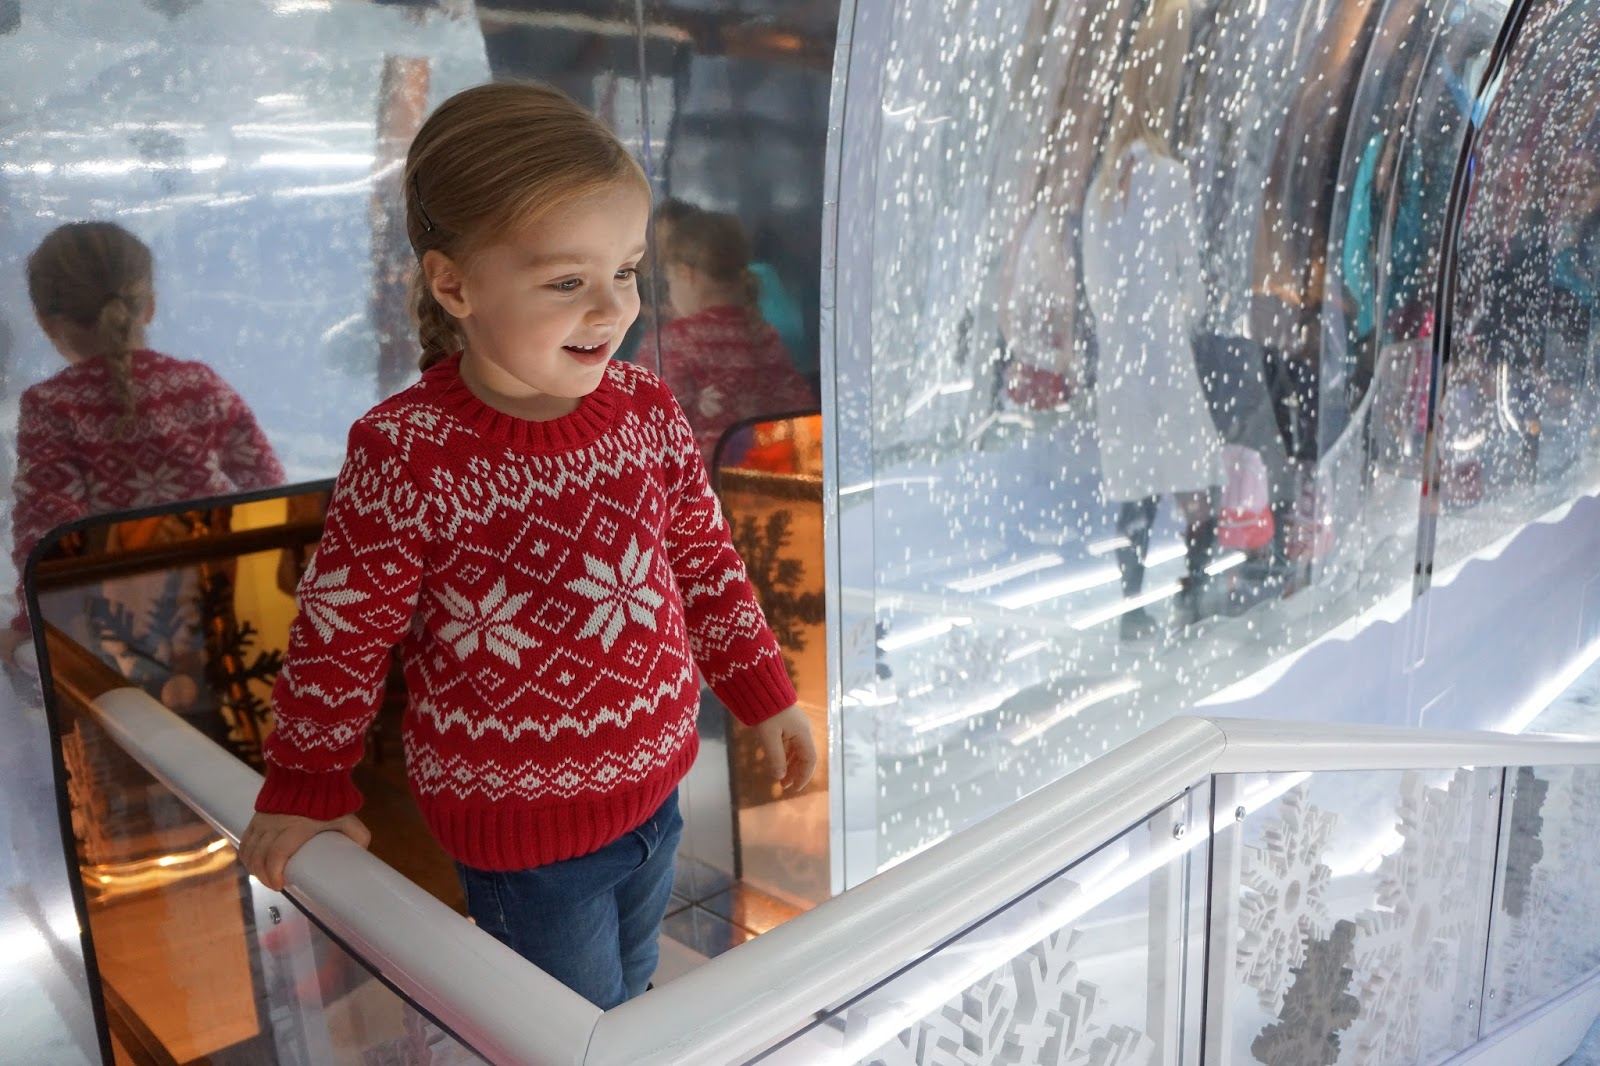 young girl in polarn o pyret red white christmas jumper